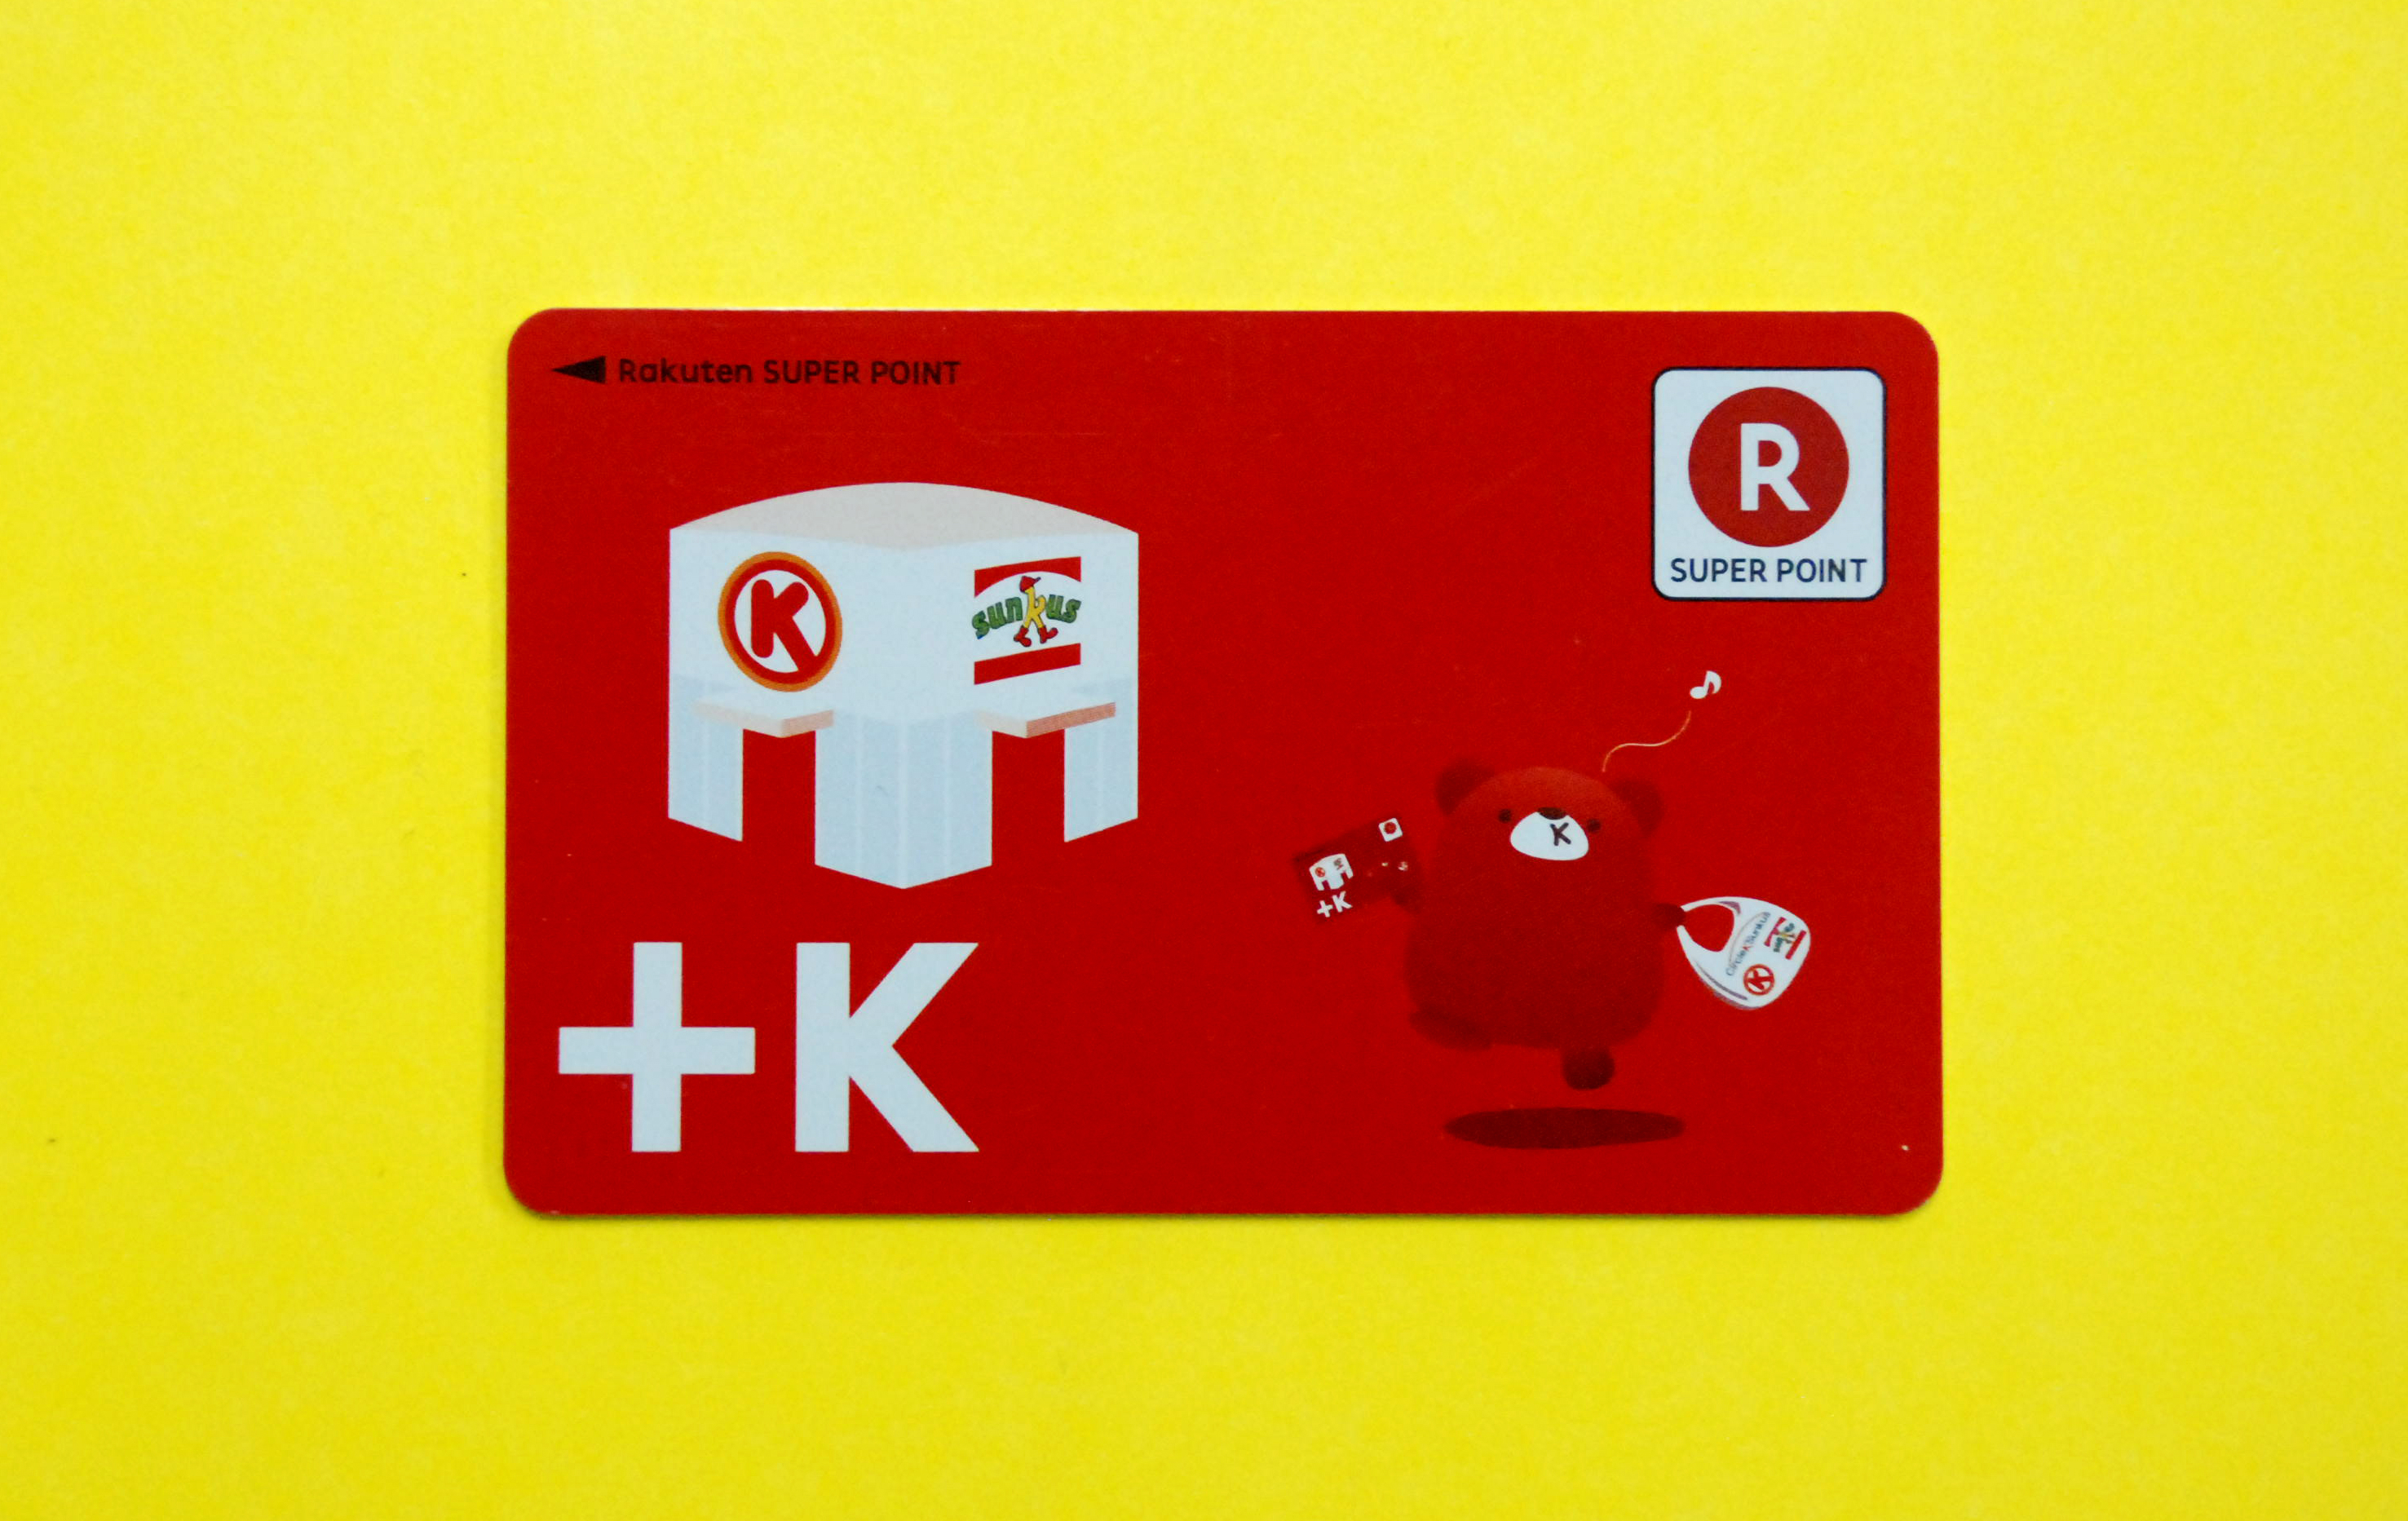 How to make the most of convenience store 'point cards' | Time Out Tokyo